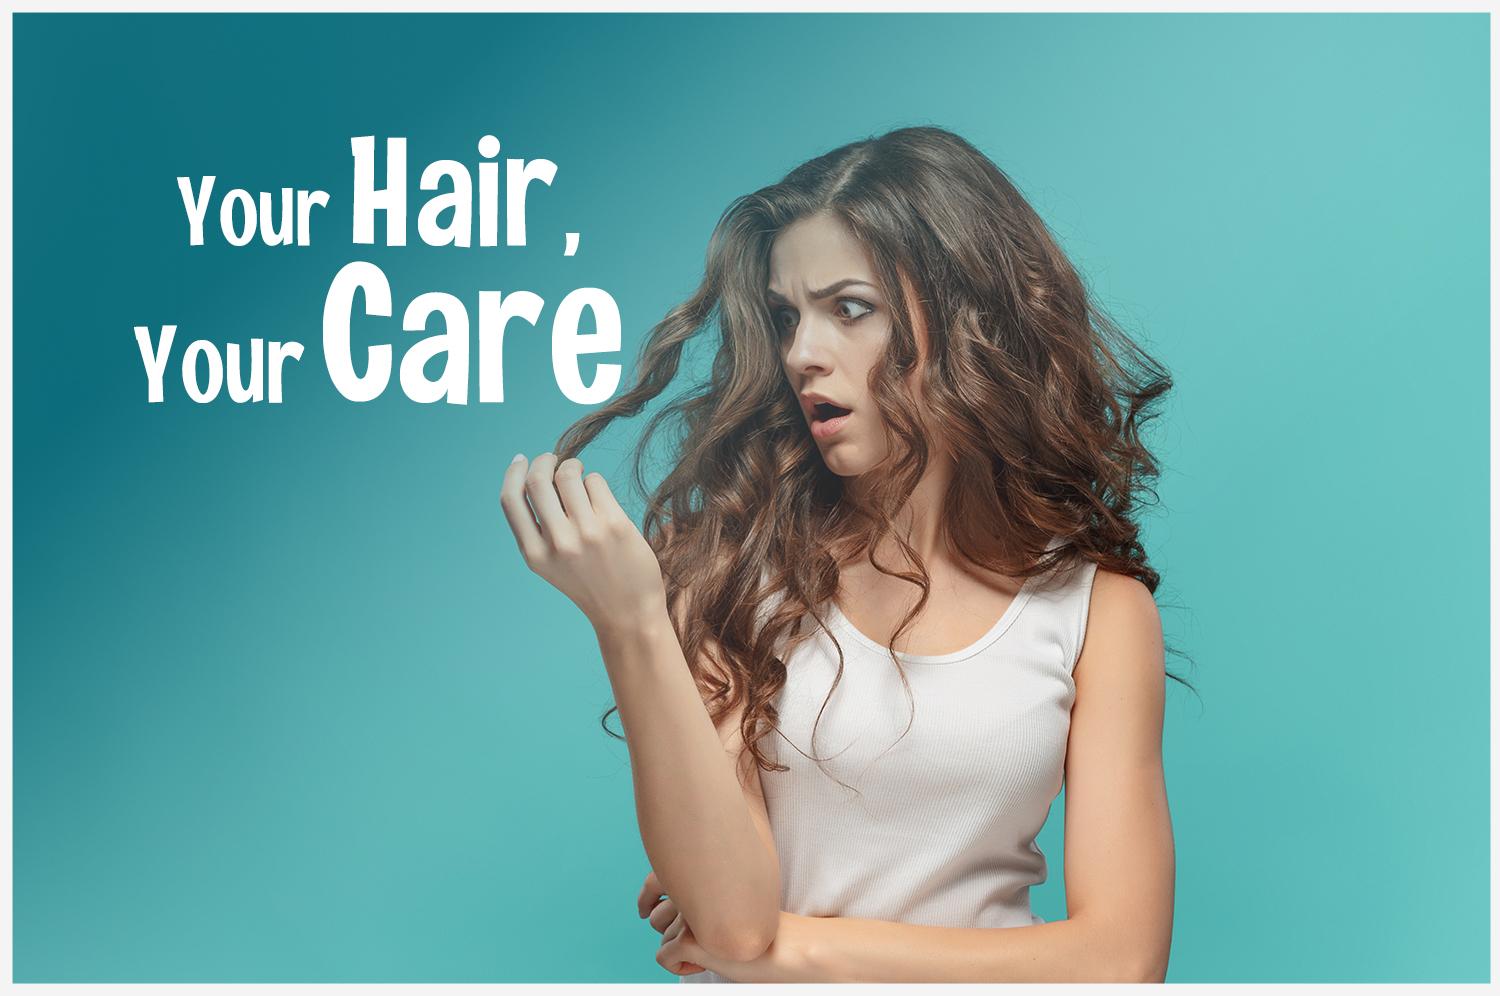 Your Hair. Your Care